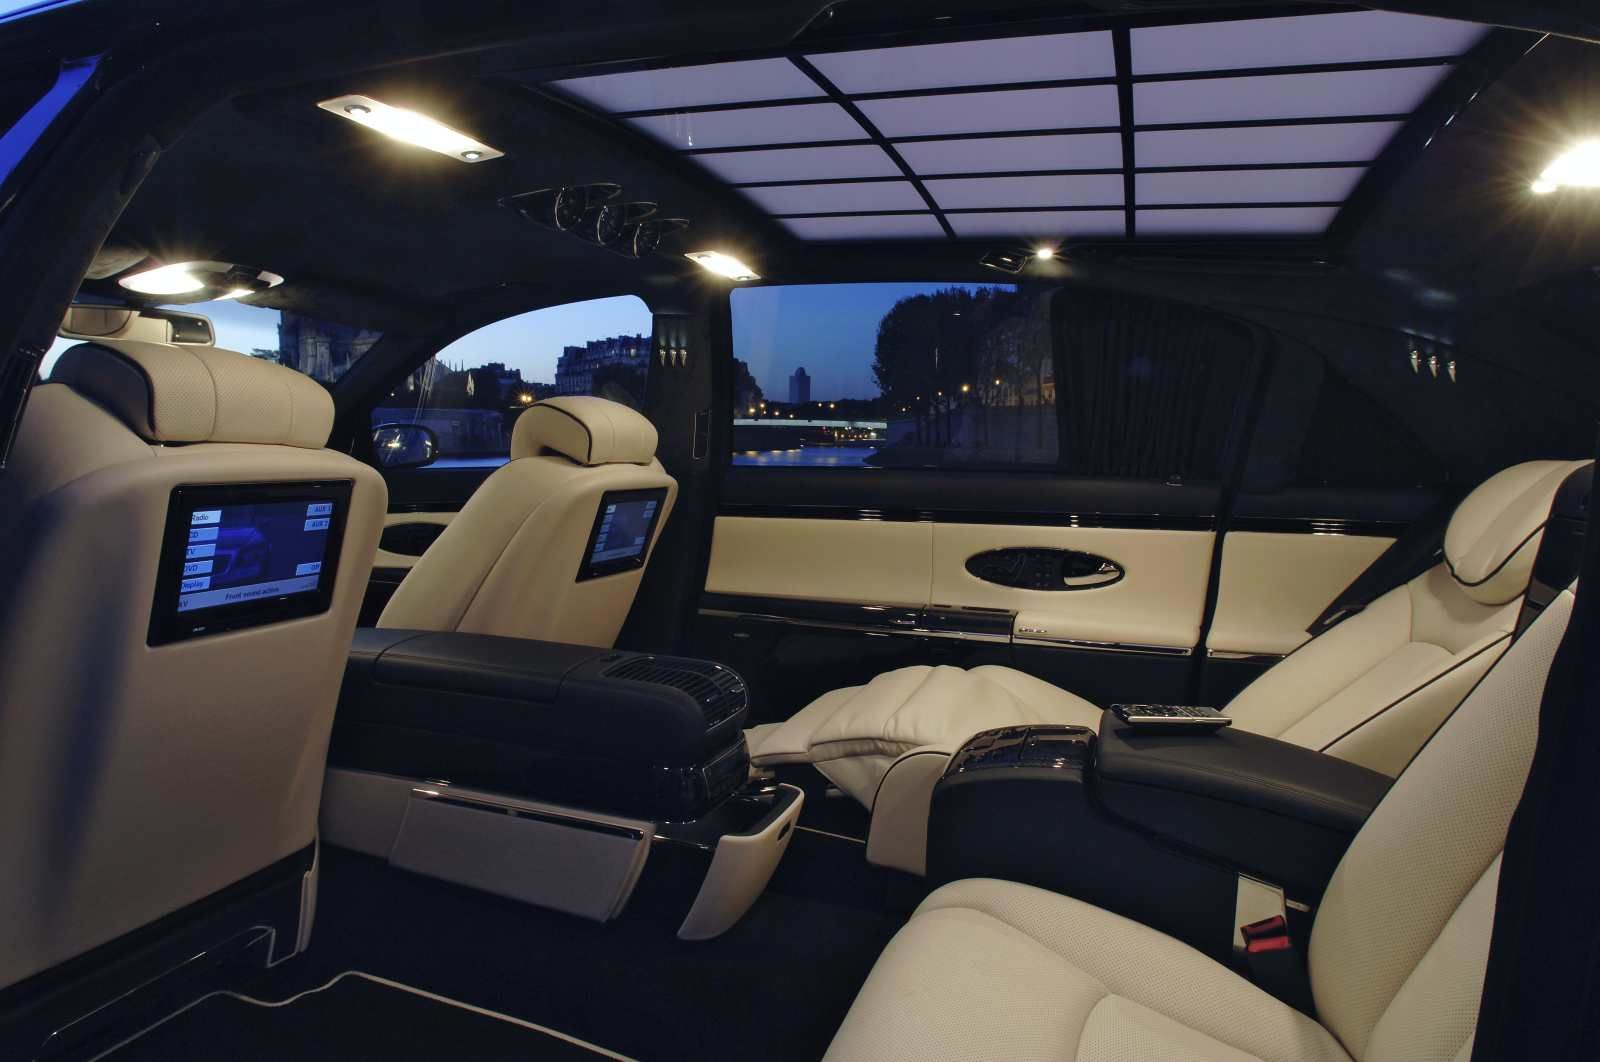 Stylish Car And Interior Maybach 62s For Luxury Car Luxury Interior Maybach Luxury Car Interior Luxury Cars